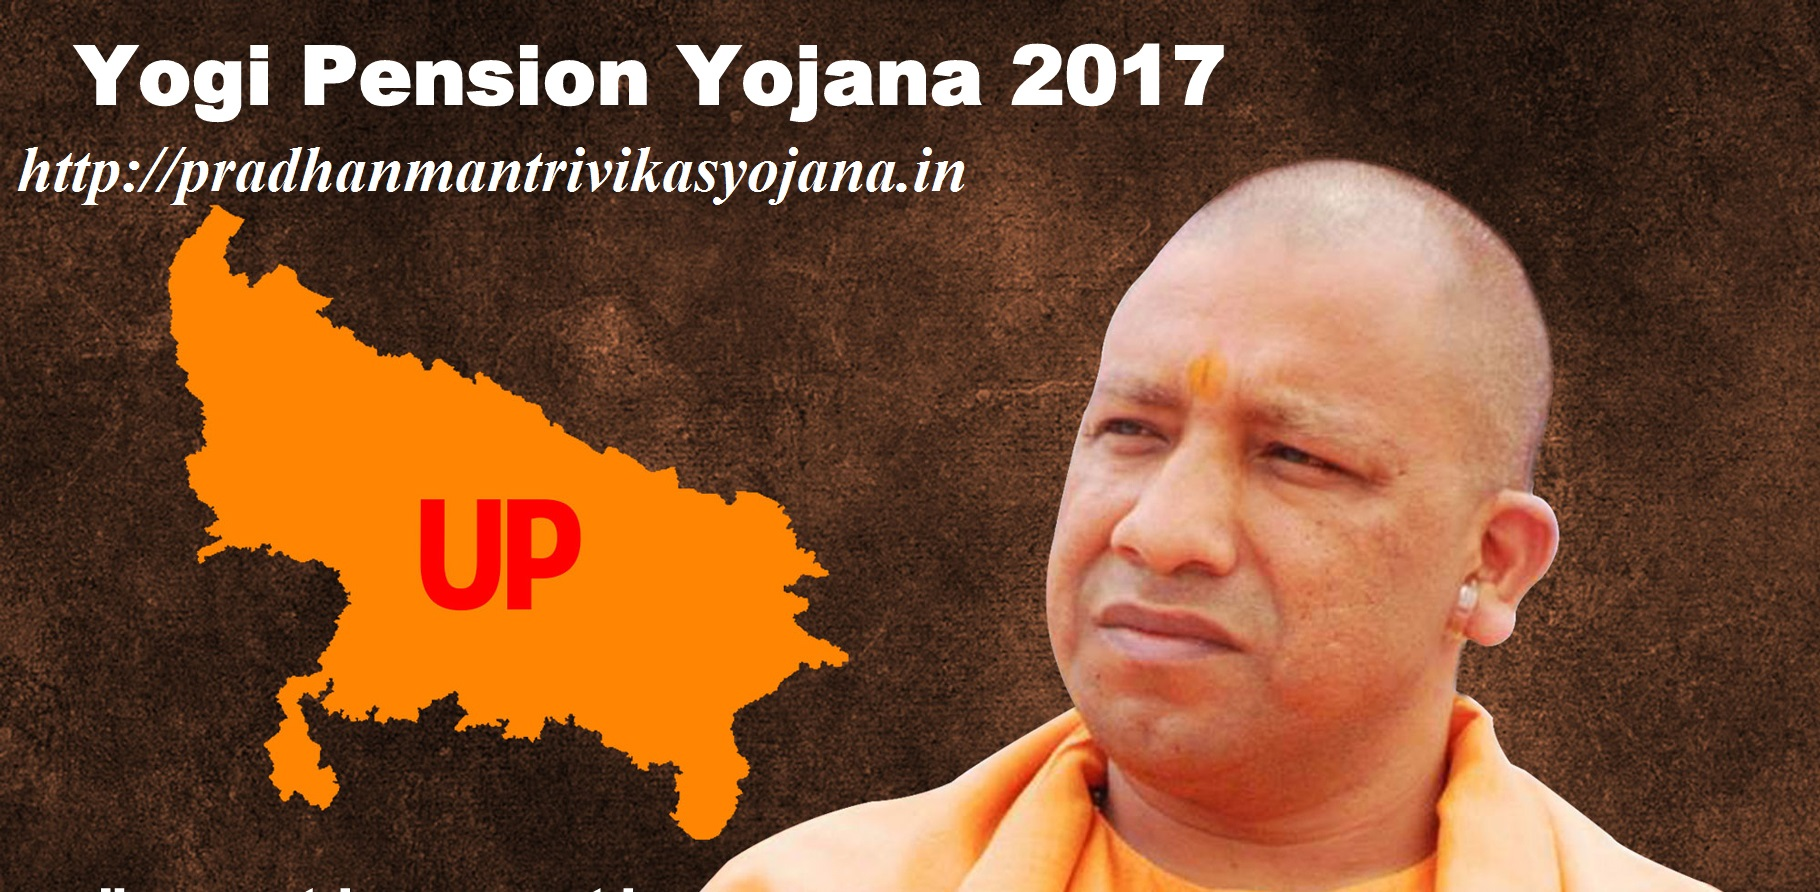 Yogi-pension-yojana-2017